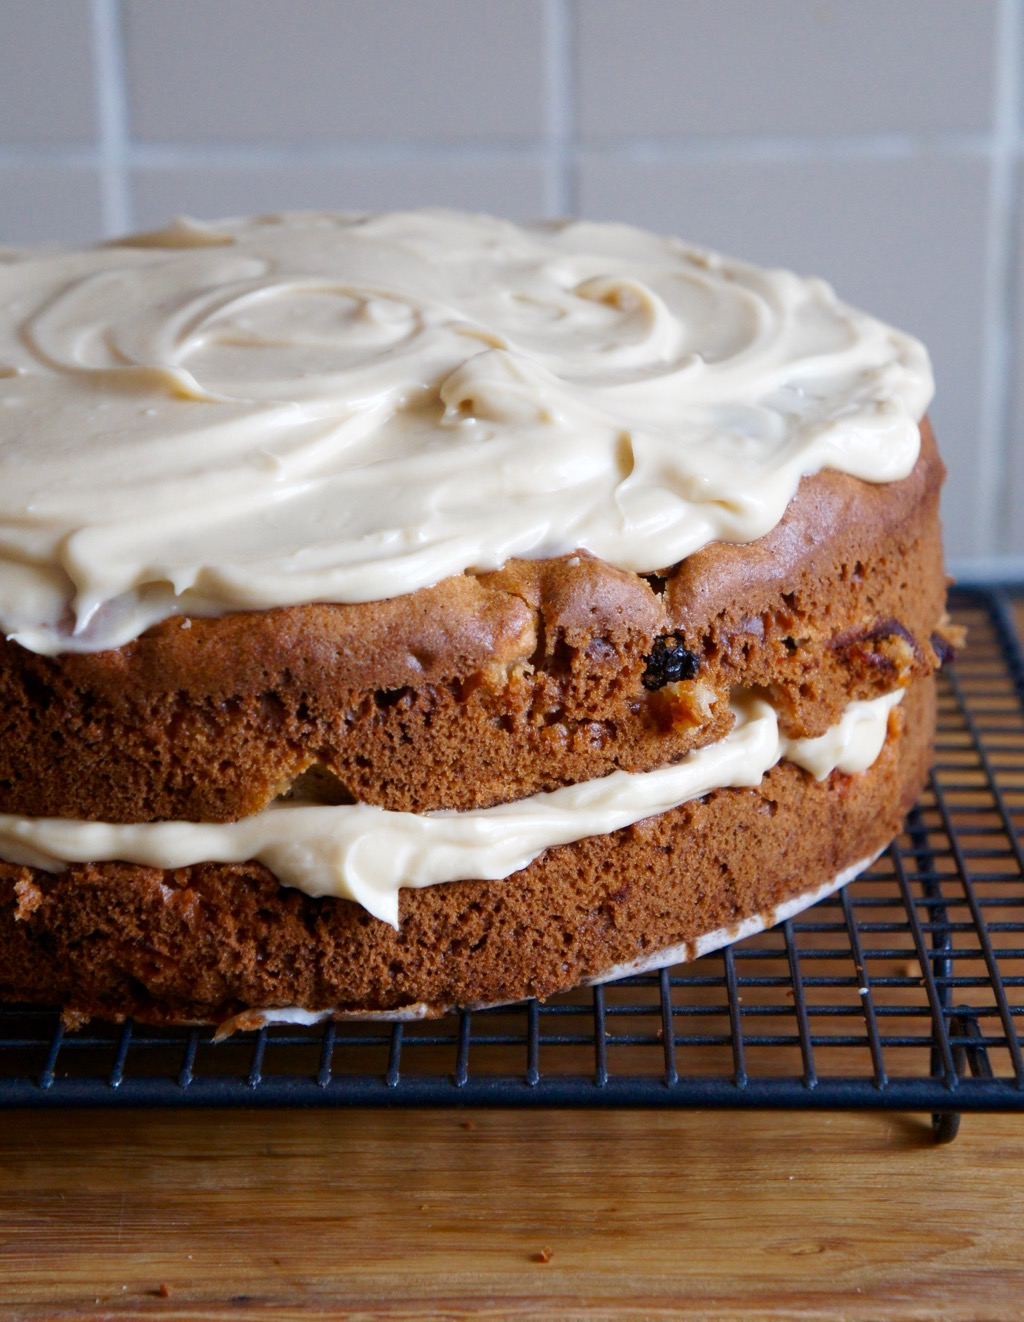 Ottolenghi Apple & Olive Oil Cake with Maple Icing